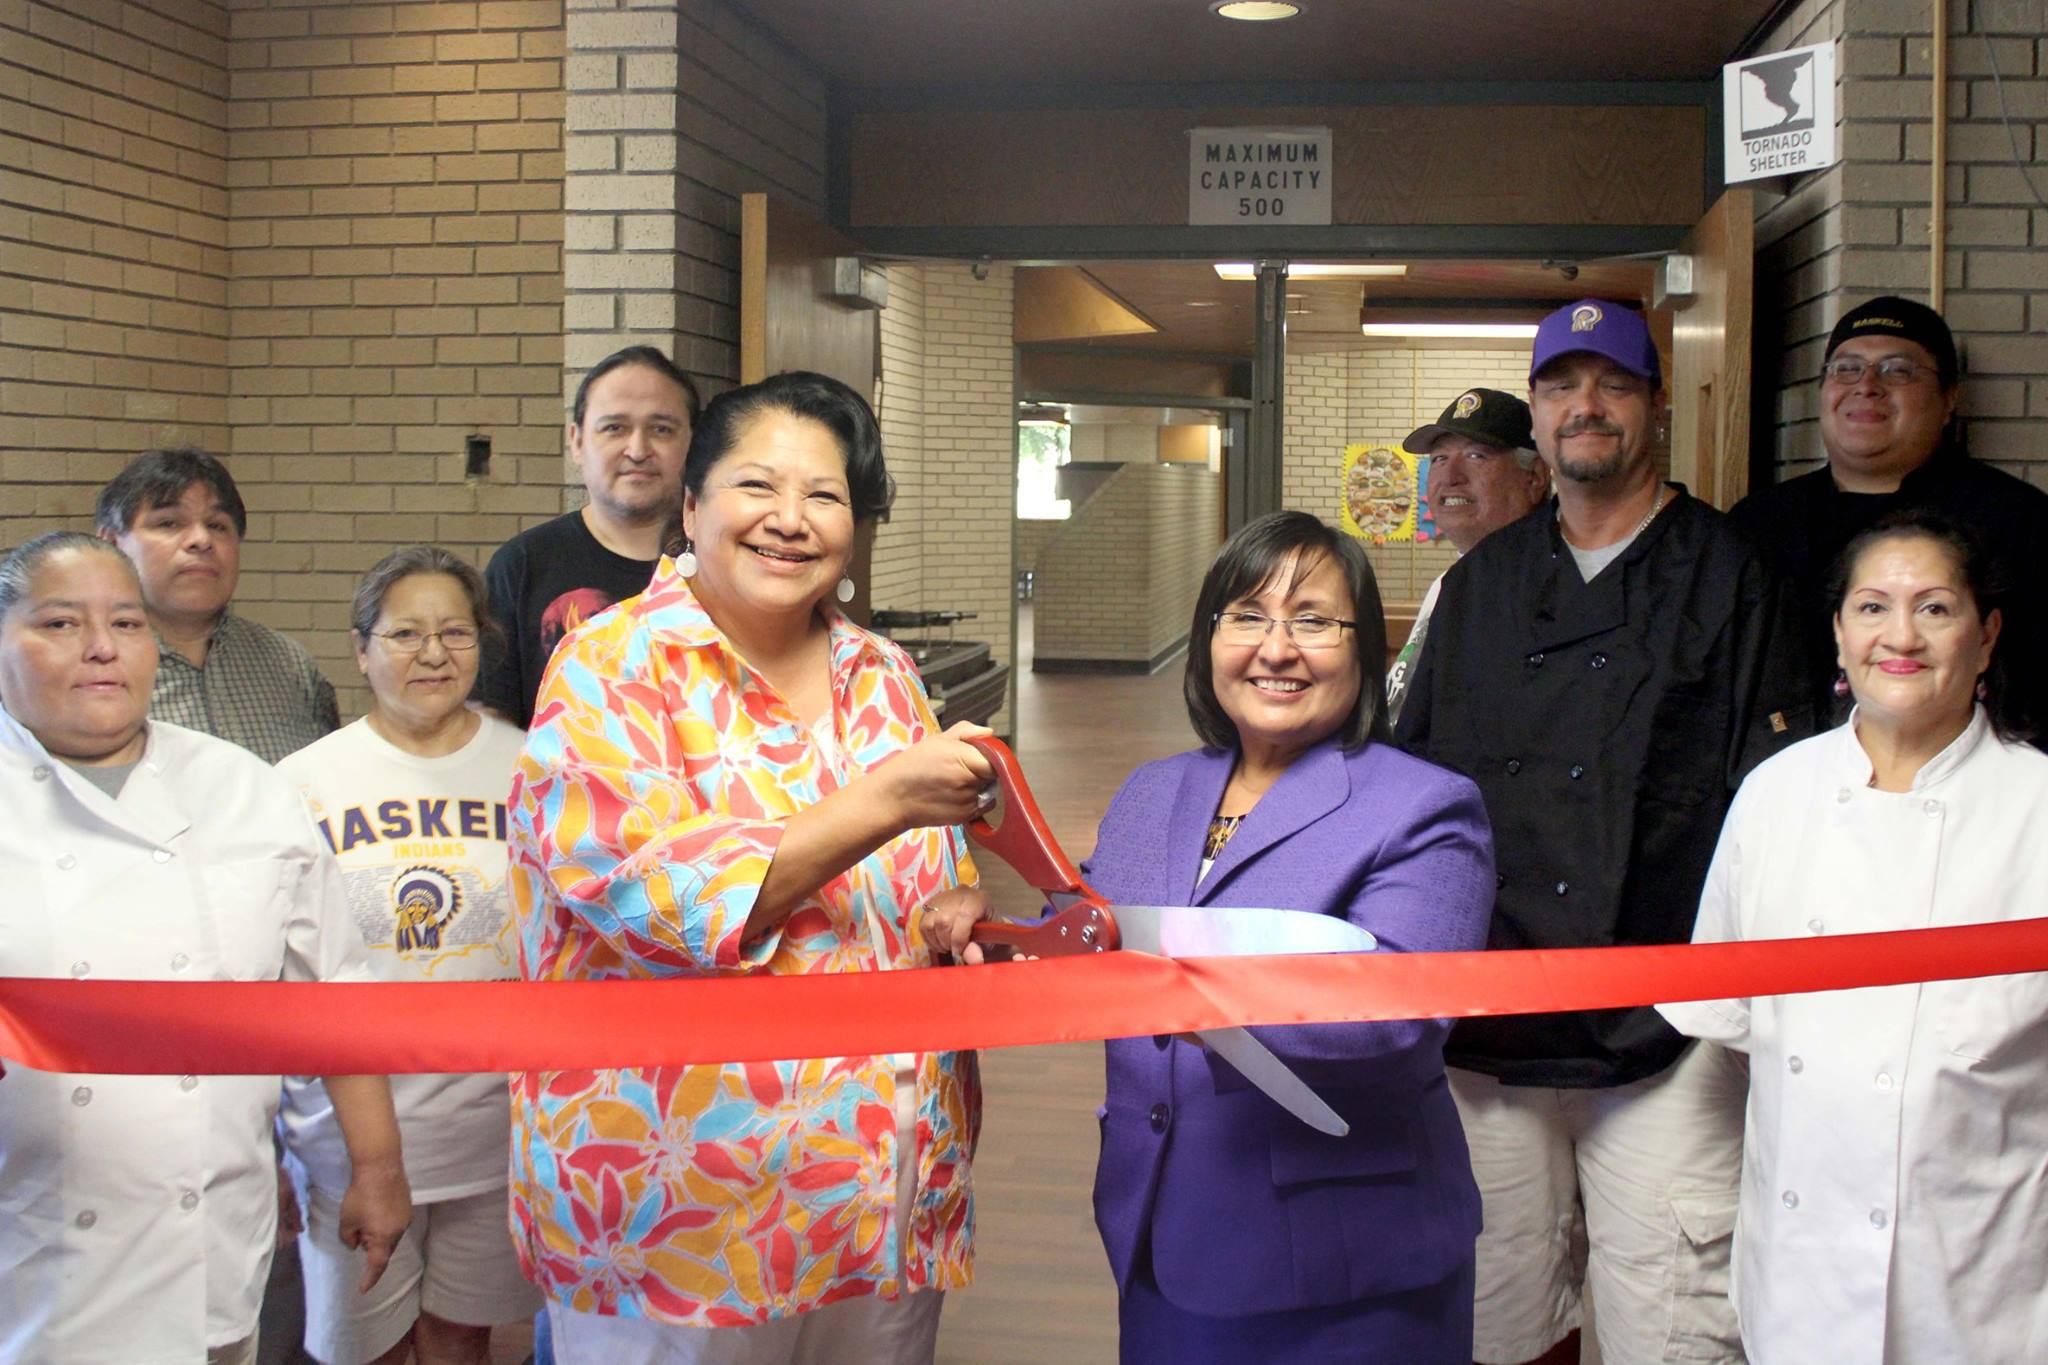 Haskell University nearly finished with $4M in campus upgrades